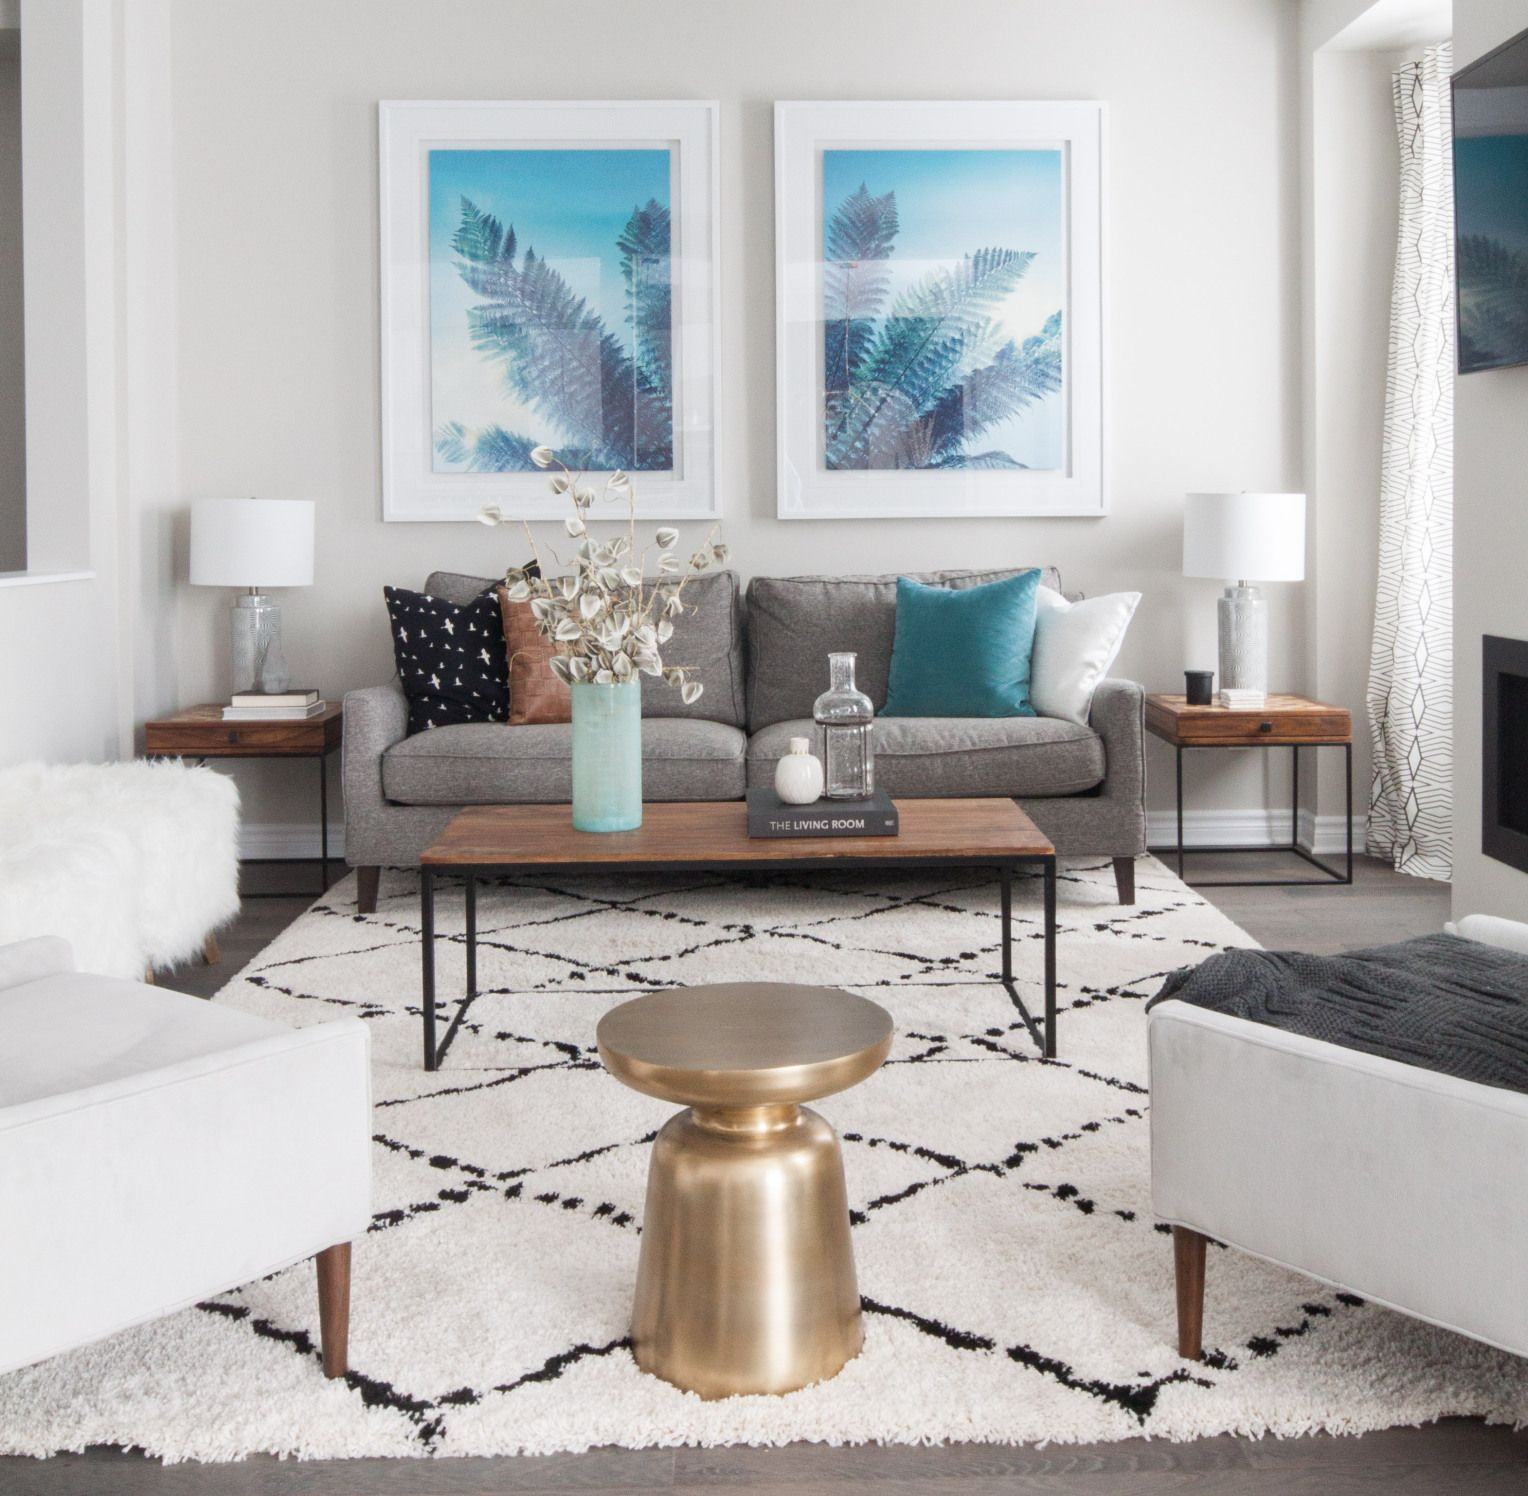 Blue Living Room: Blue/teal Accent Colors Pop Against The More